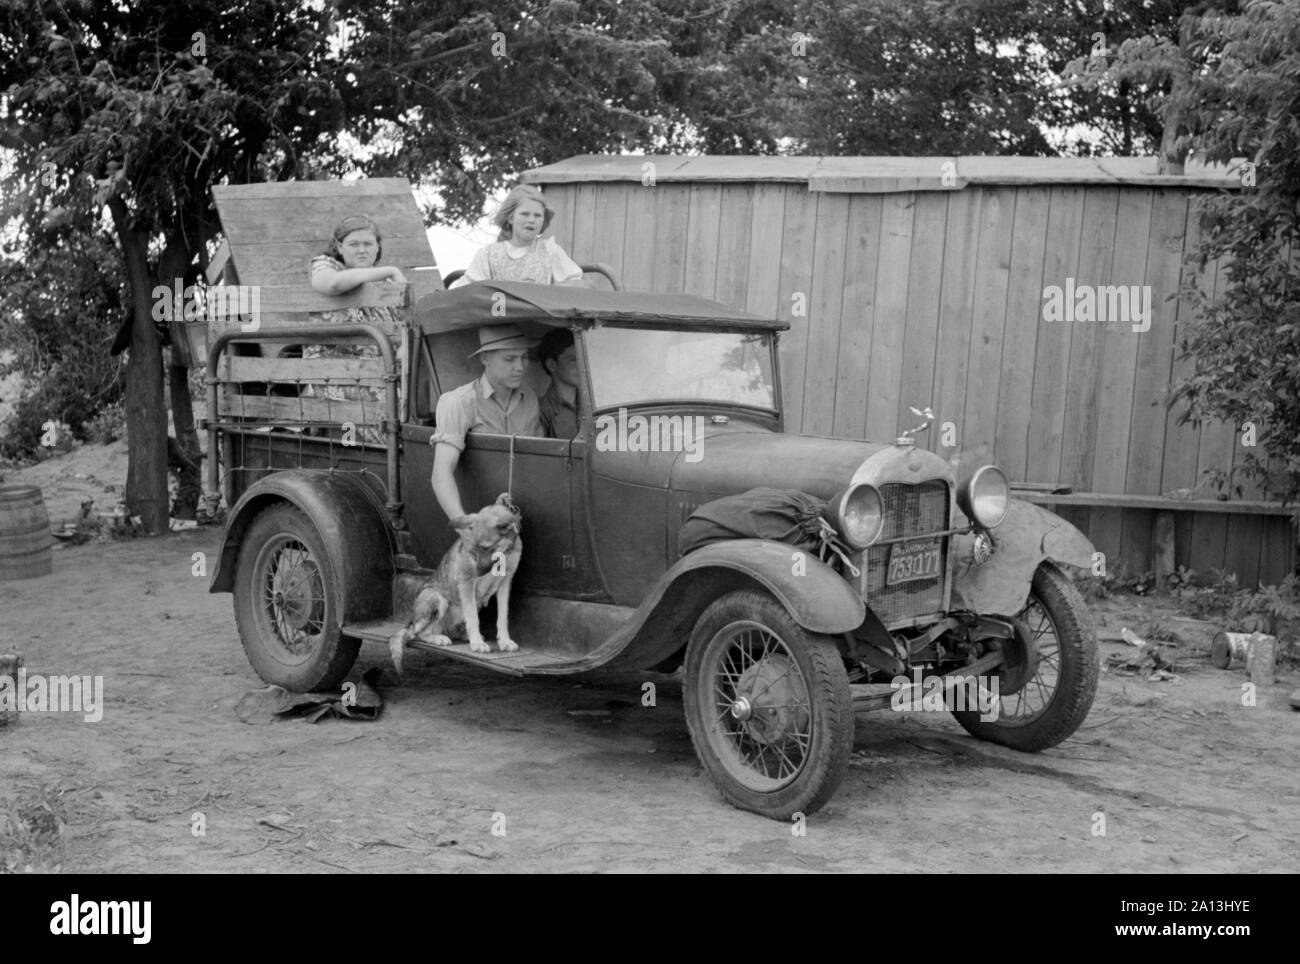 Great Depression era photograph of a migrant family in a packed car preparing to leave. Stock Photo